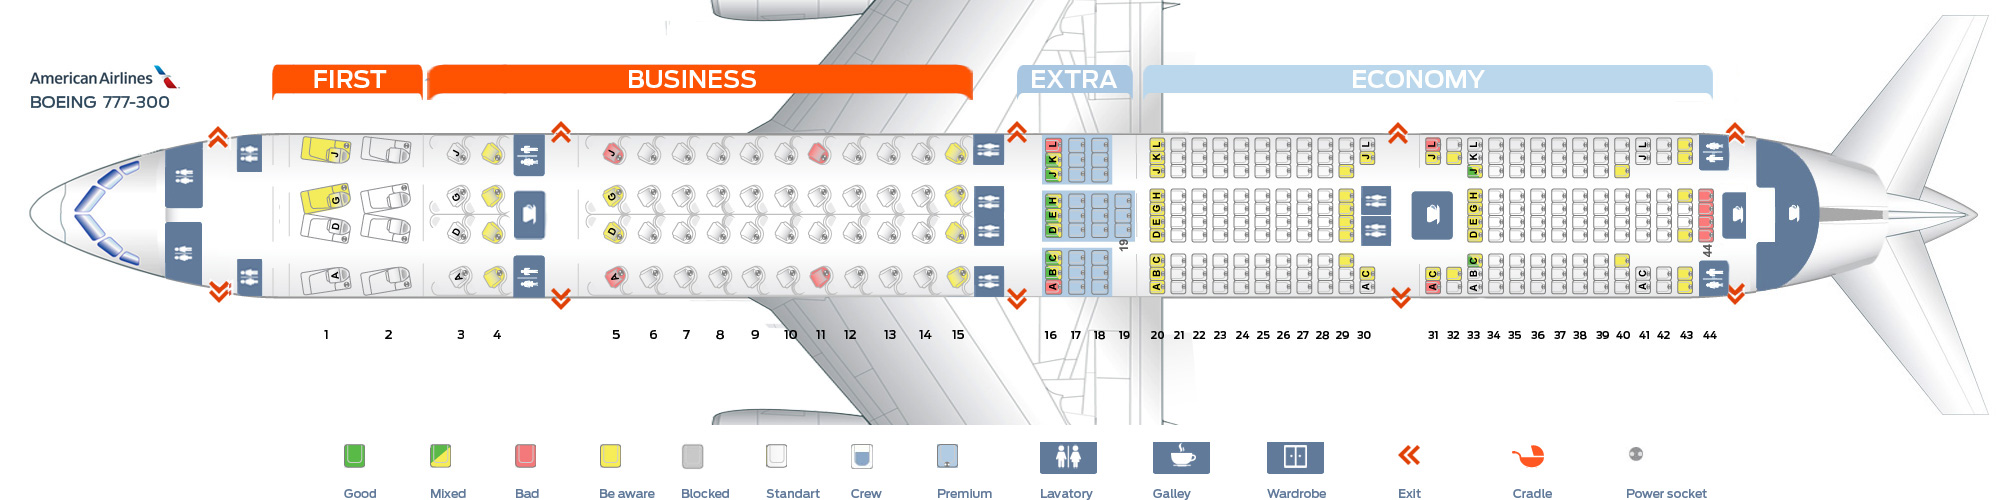 seat map of the boeing 777 300